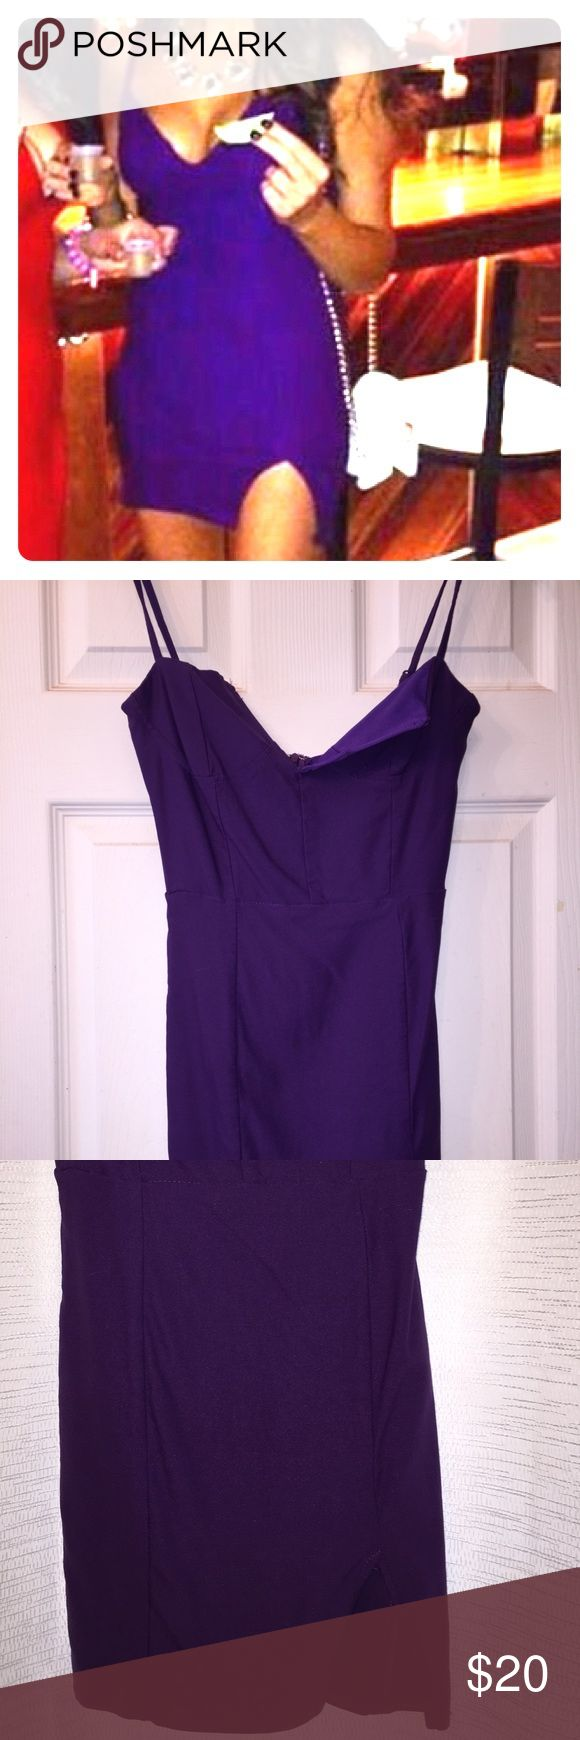 Tobi Purple Bodycon Dress Only worn once! Size Small. 65 % Viscose 30% Nylon 5% Elastane. Fits really well but is a short dress!! Tobi Dresses Mini